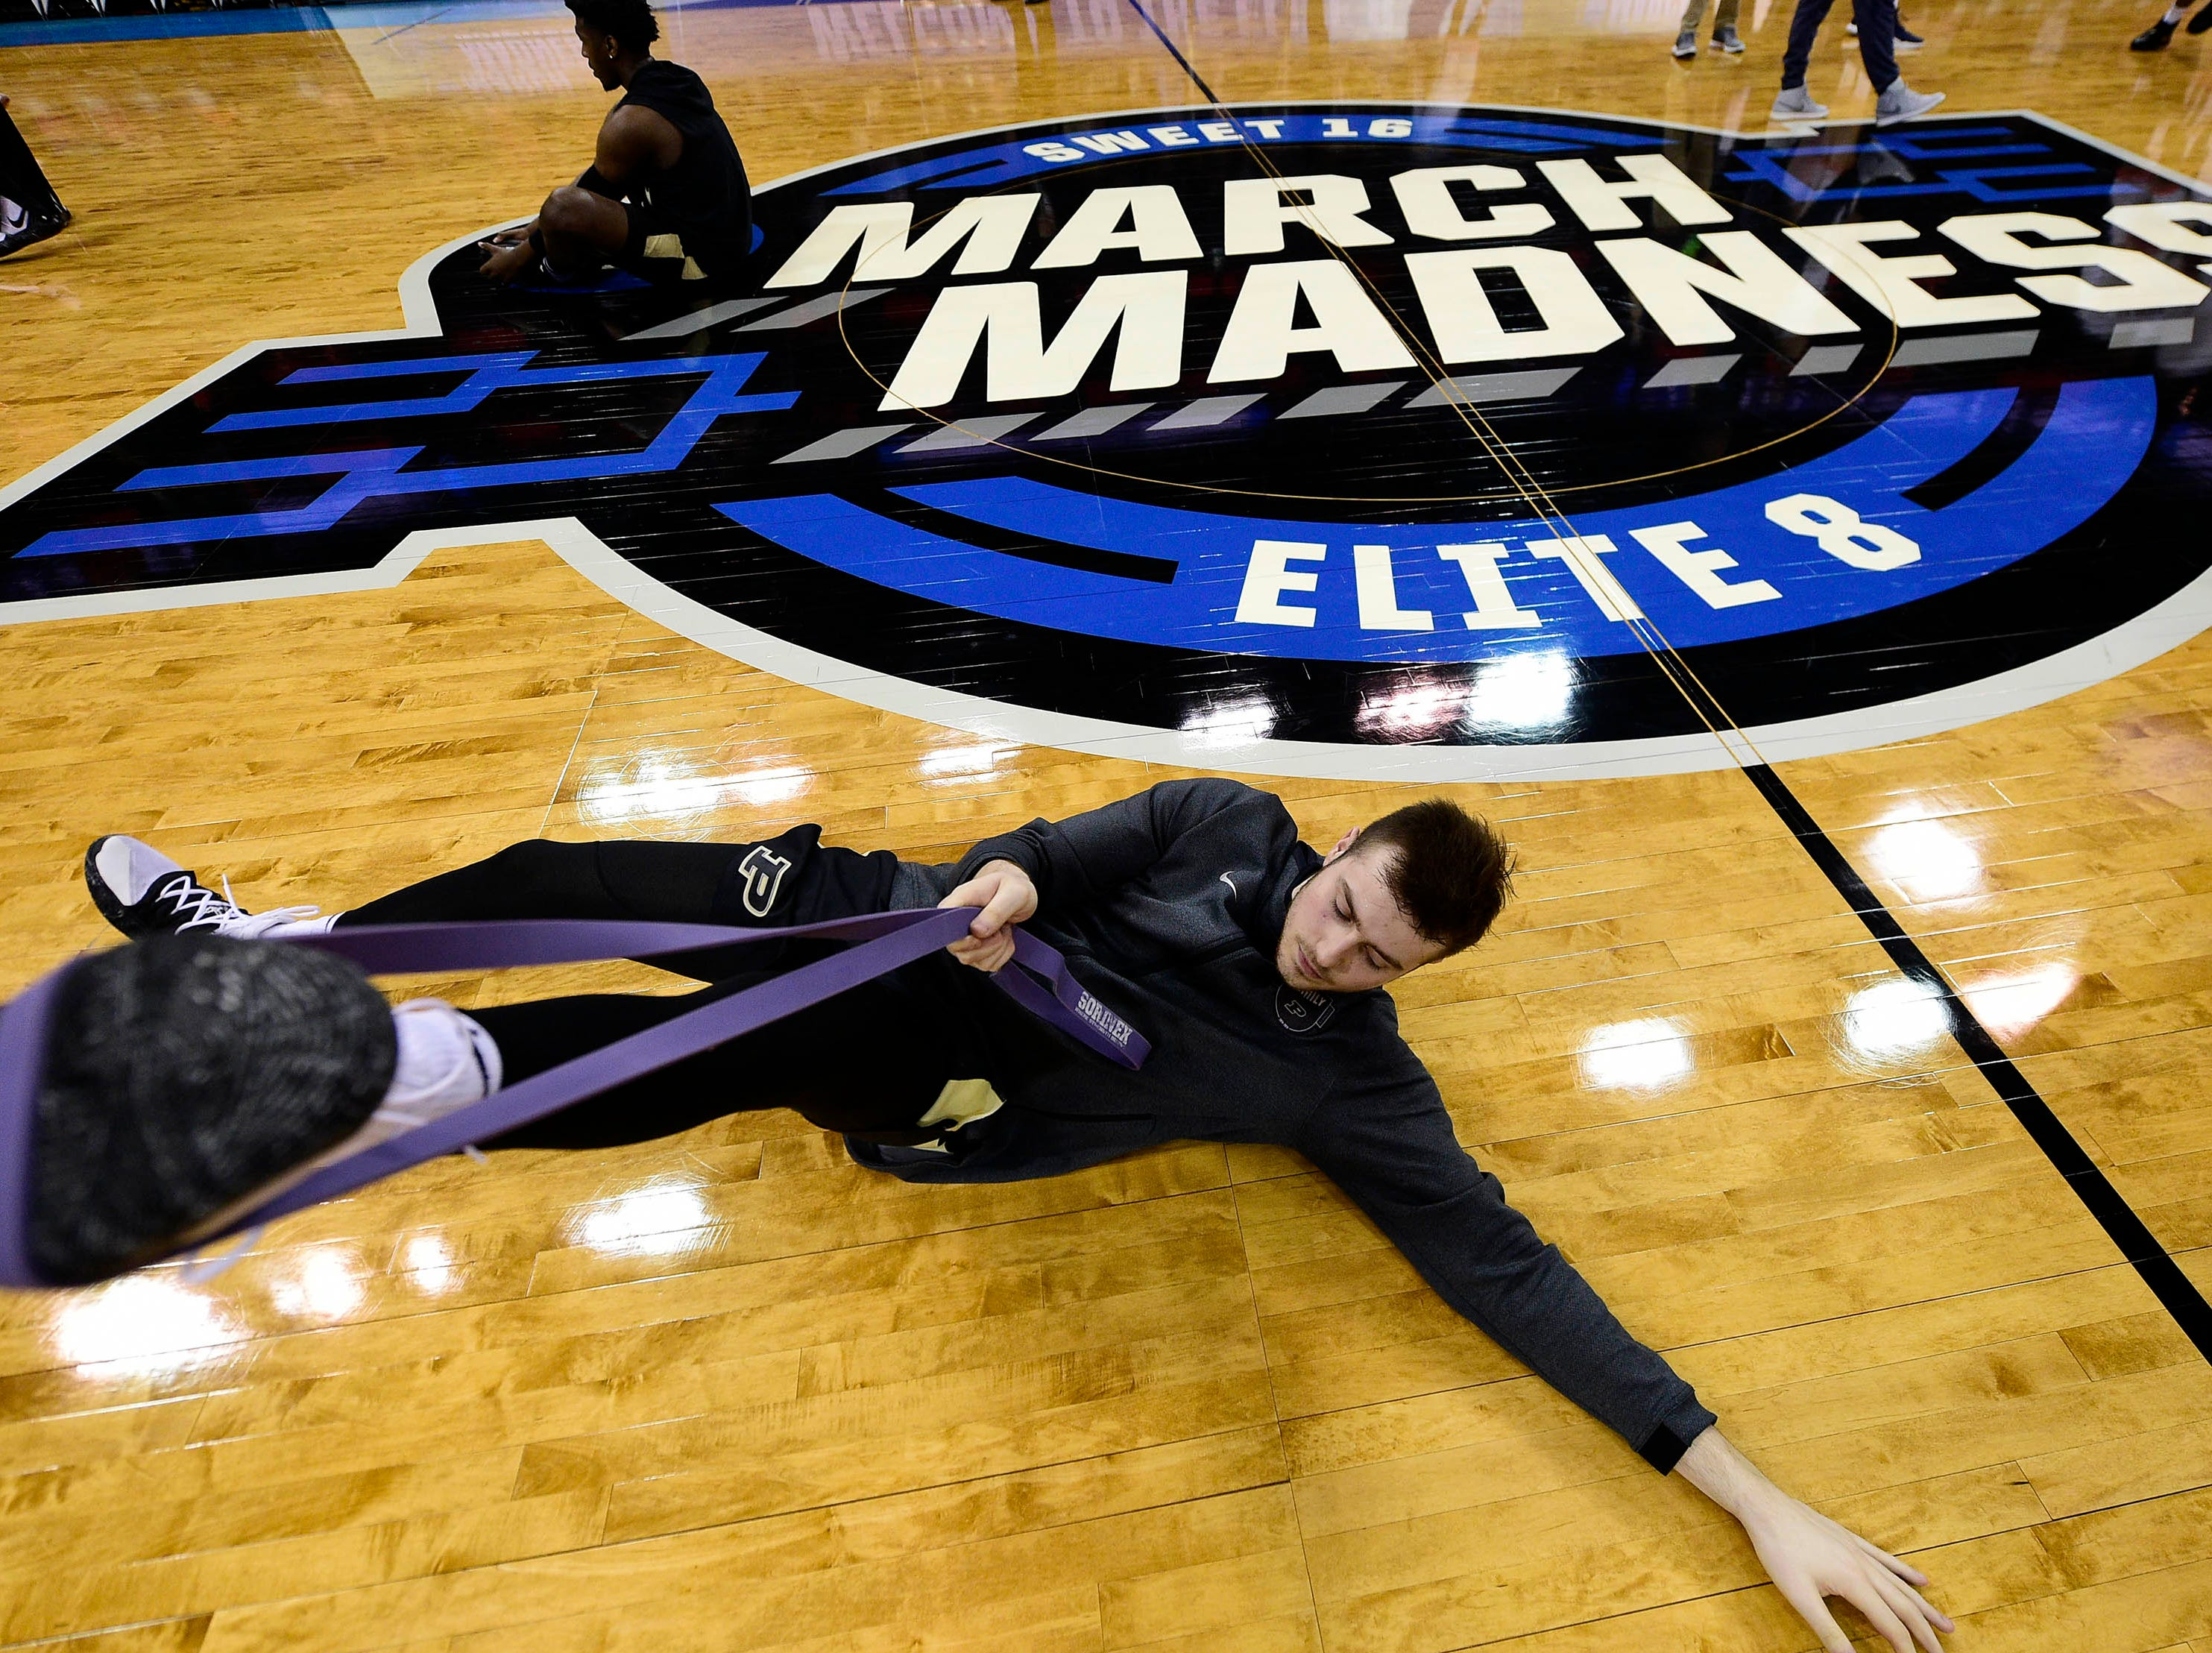 Mar 30, 2019; Louisville, KY, United States; Purdue Boilermakers guard Sasha Stefanovic (55) stretches for the championship game against the Virginia Cavaliers of the south regional of the 2019 NCAA Tournament at KFC Yum Center. Mandatory Credit: Thomas J. Russo-USA TODAY Sports